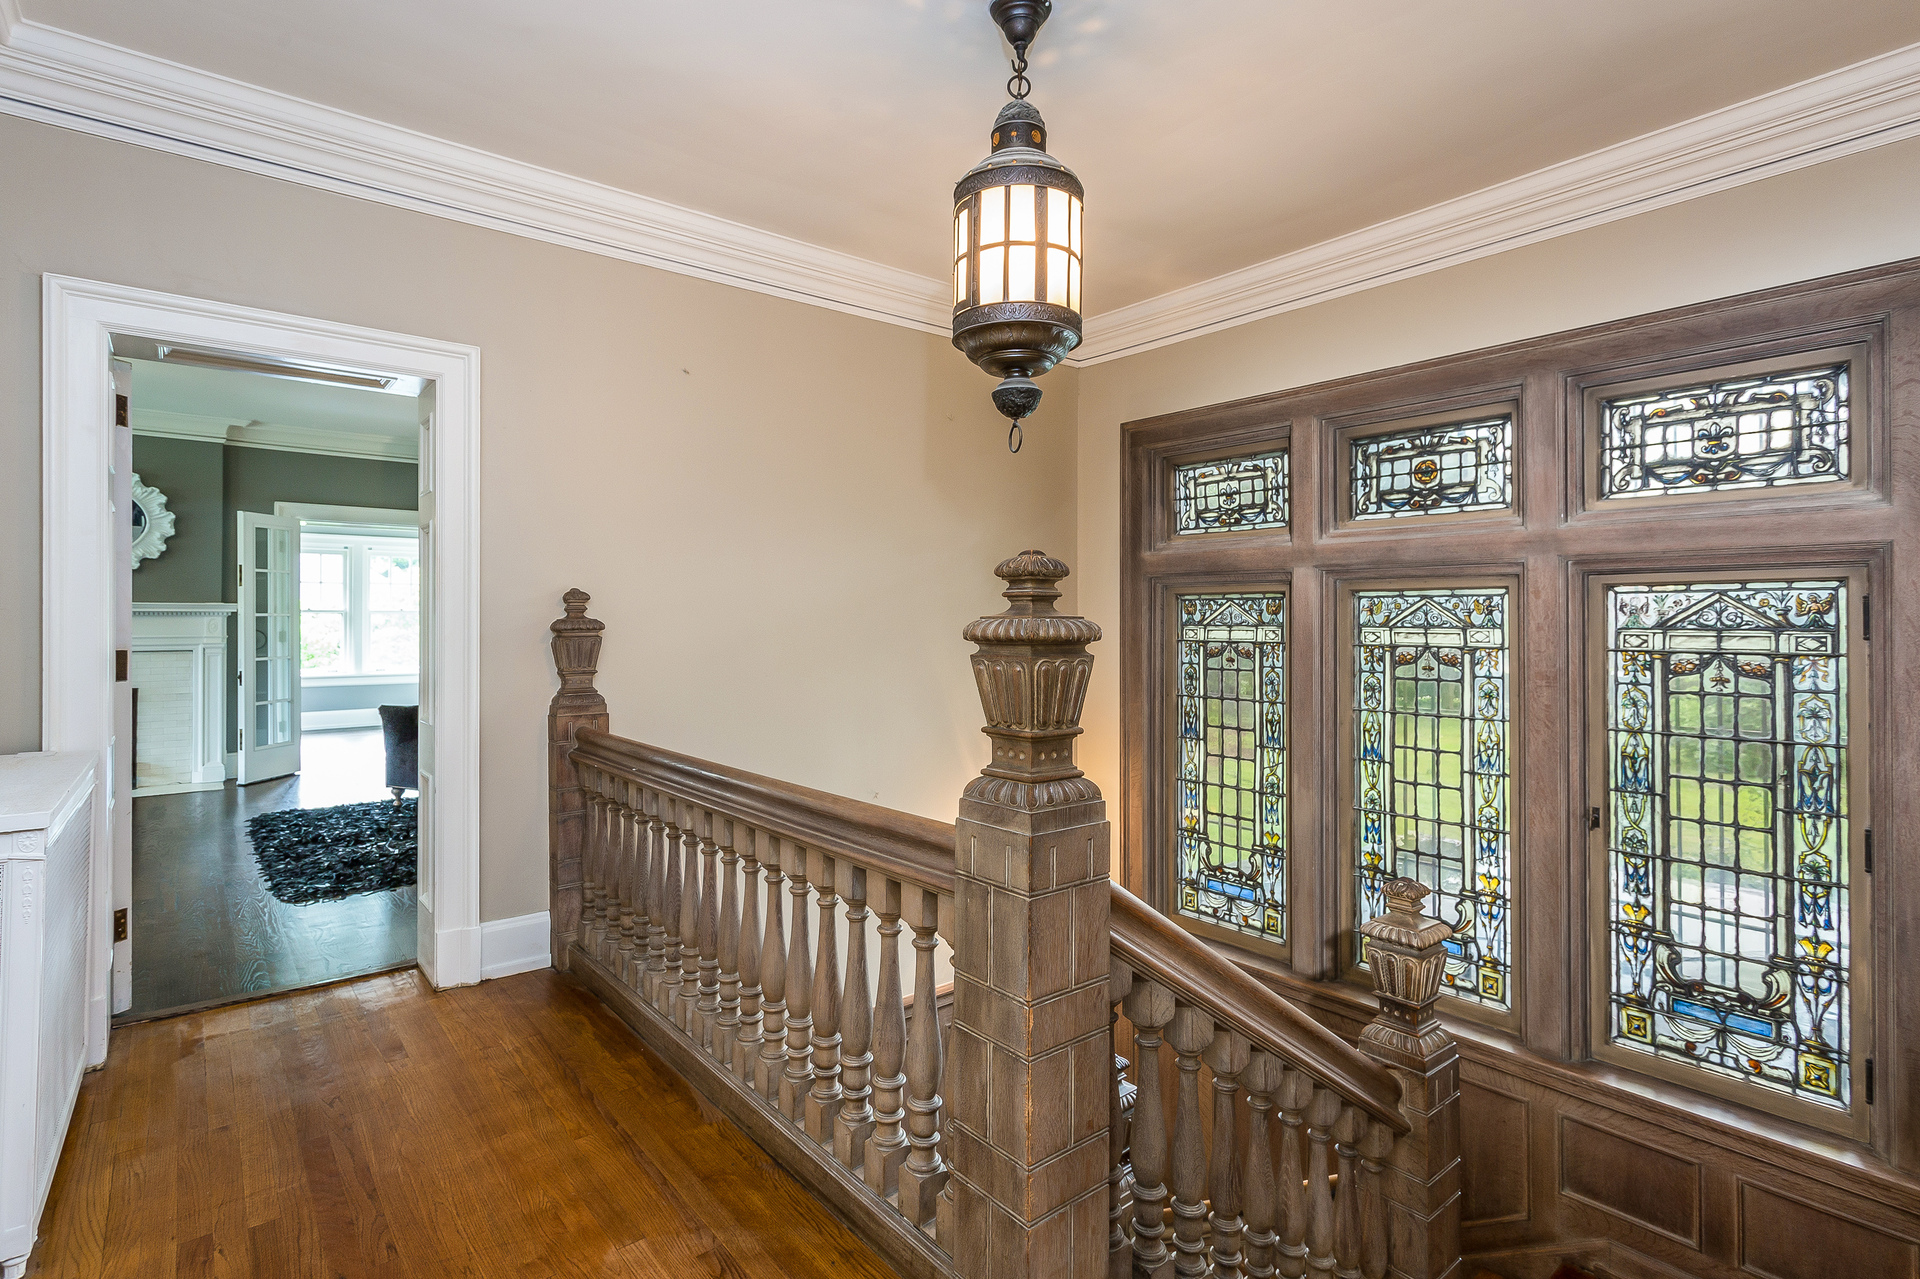 Historic Briggs mansion in BostonEdison lists for just over 1M  Curbed Detroit